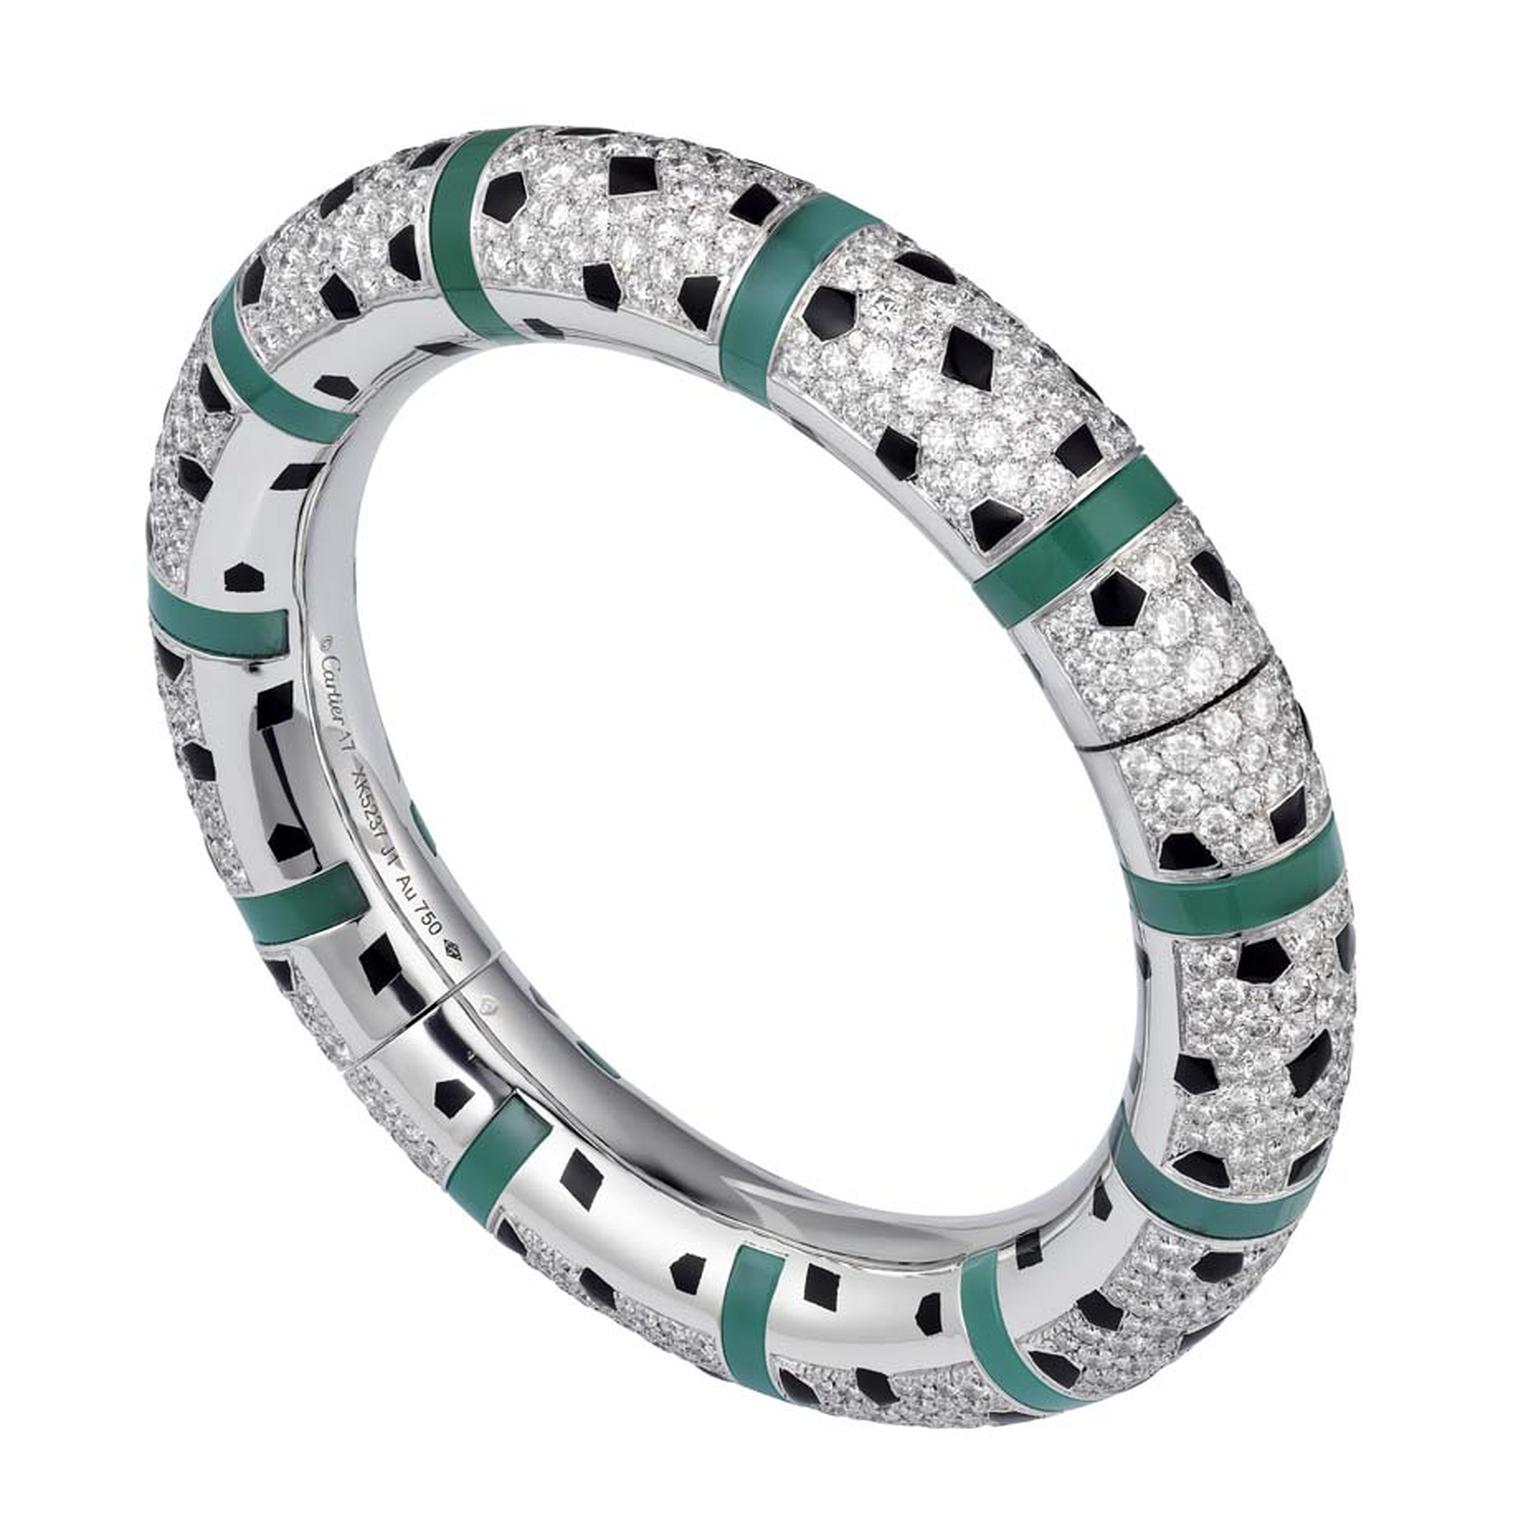 Panthère de Cartier bracelet in white gold featuring 661 brilliant-cut diamonds, black lacquer, onyx and chrysoprase.